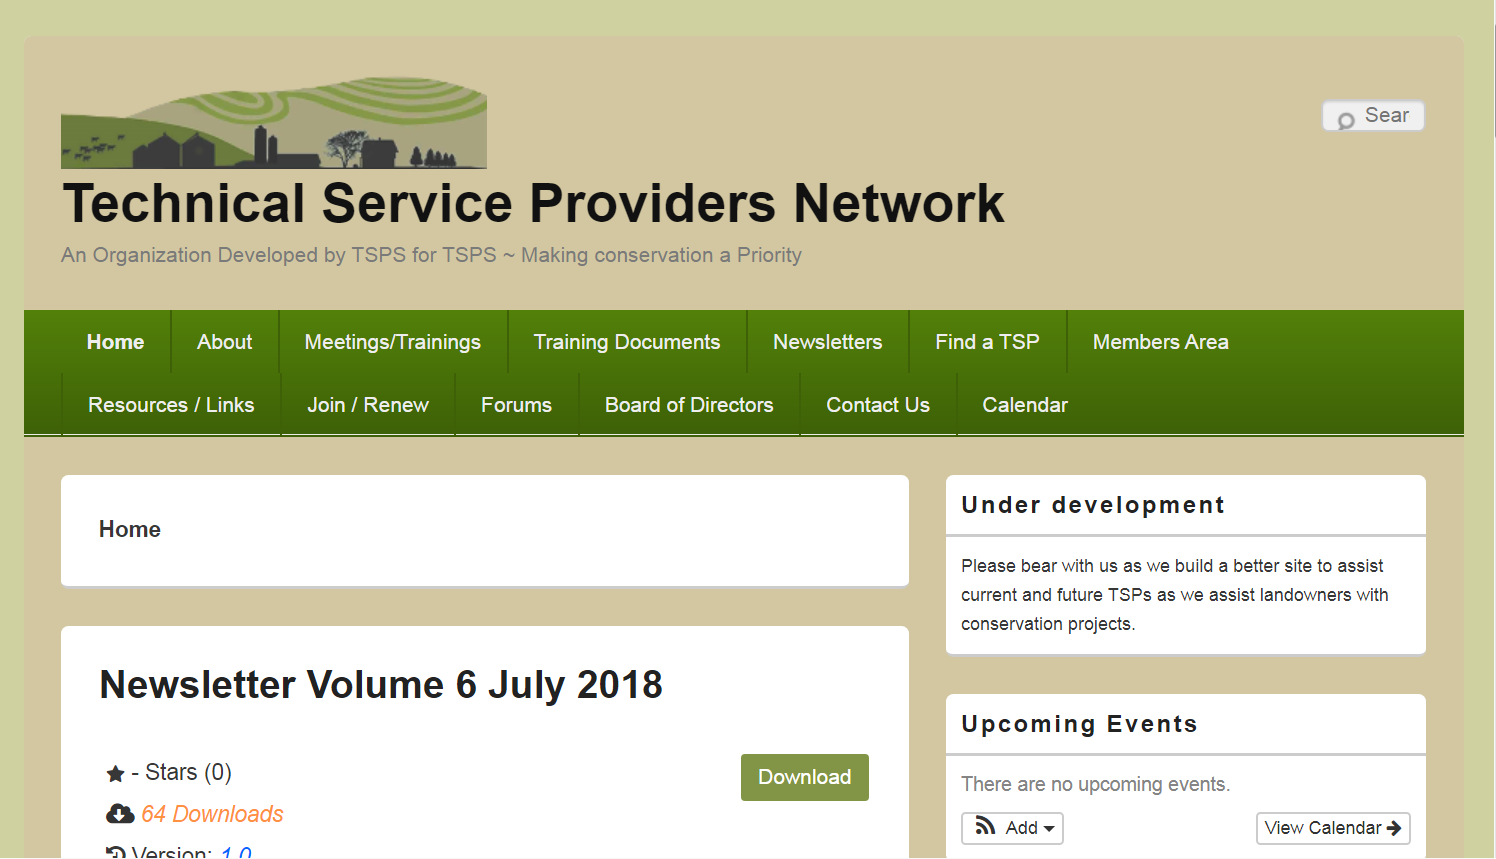 Technical Service Providers Network